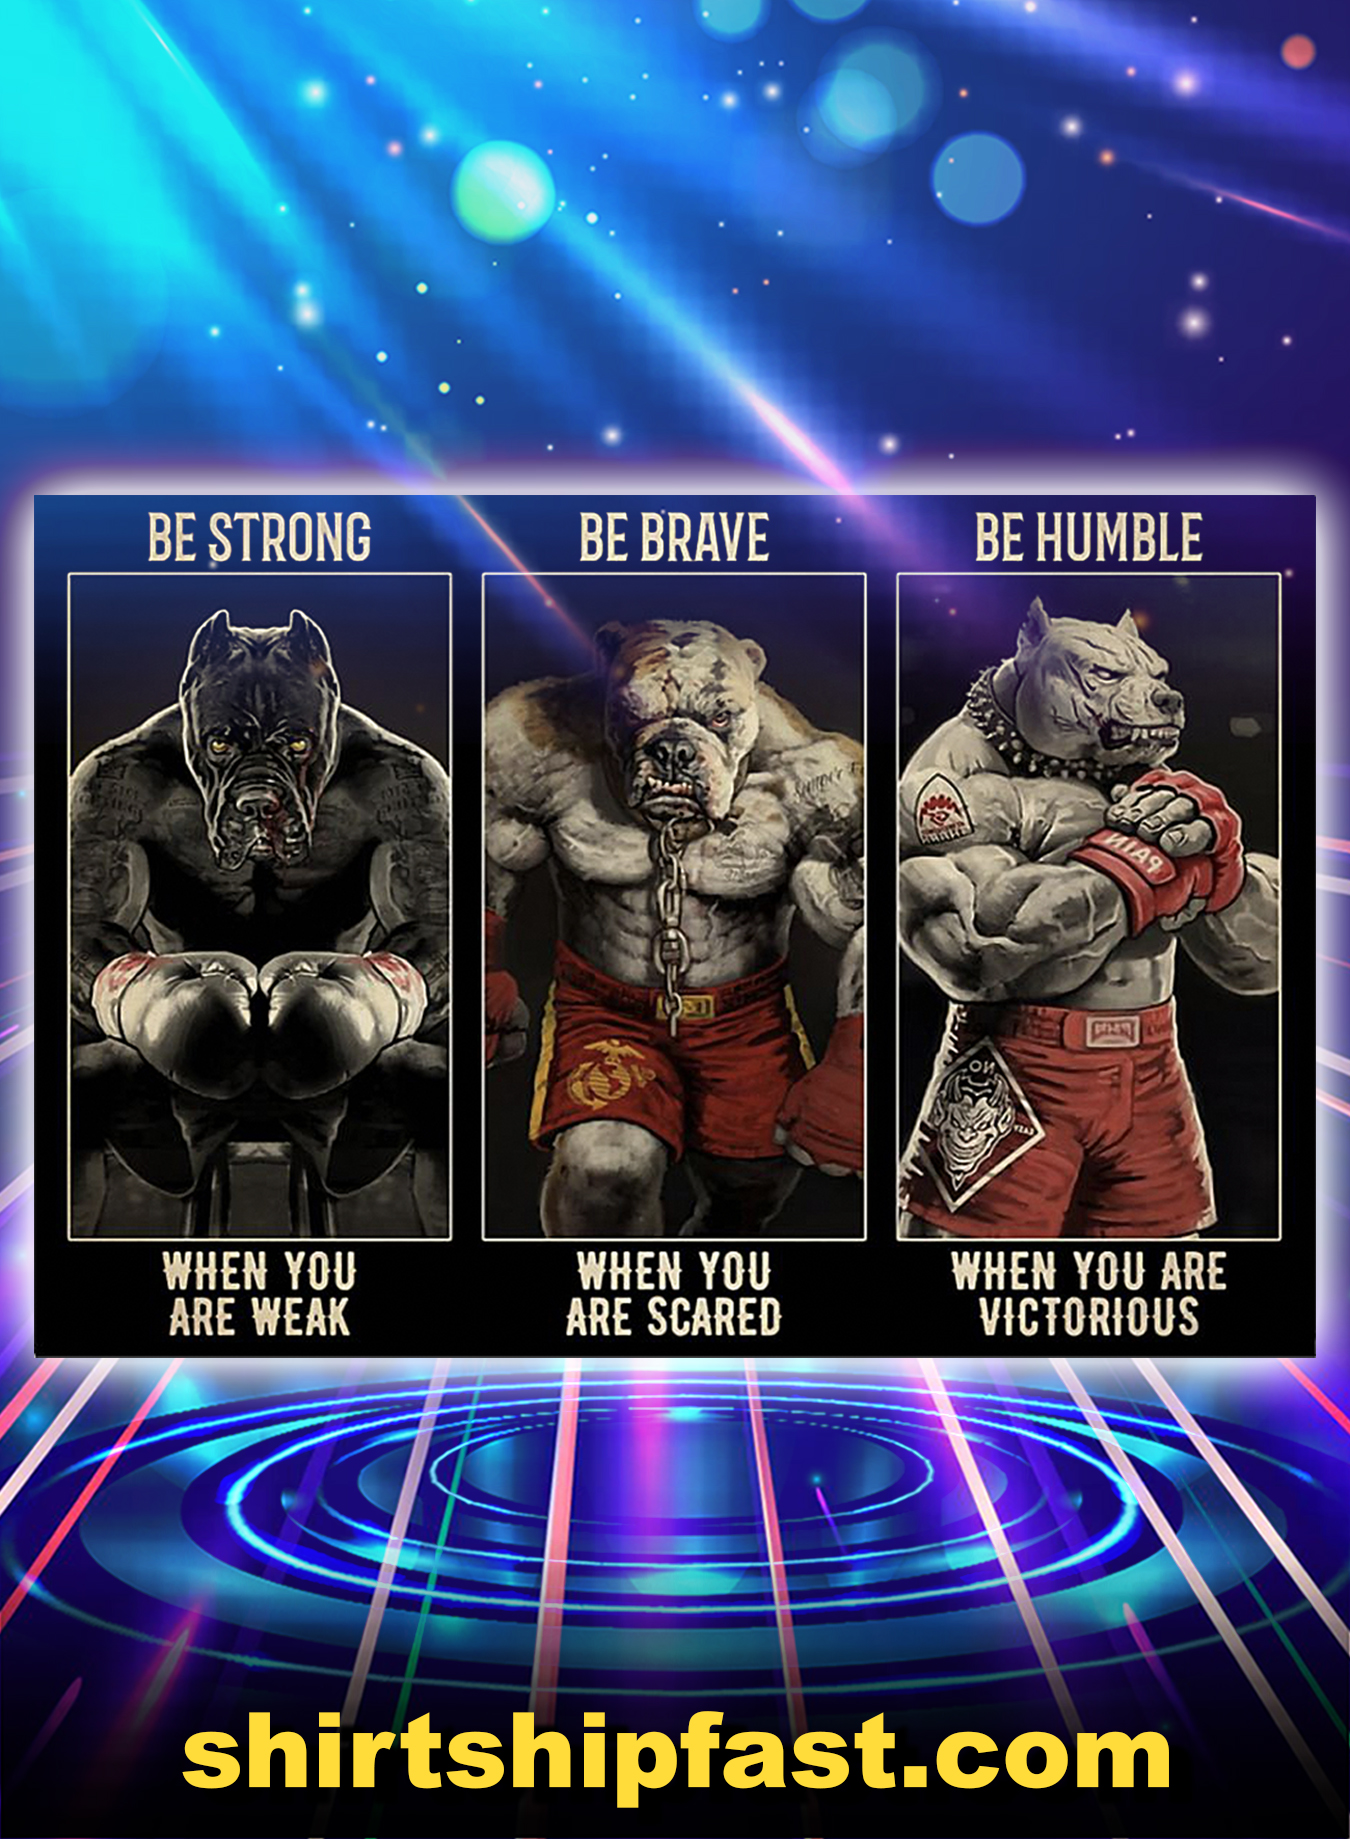 Poster Pitbull boxing be strong be brave be humble - A3